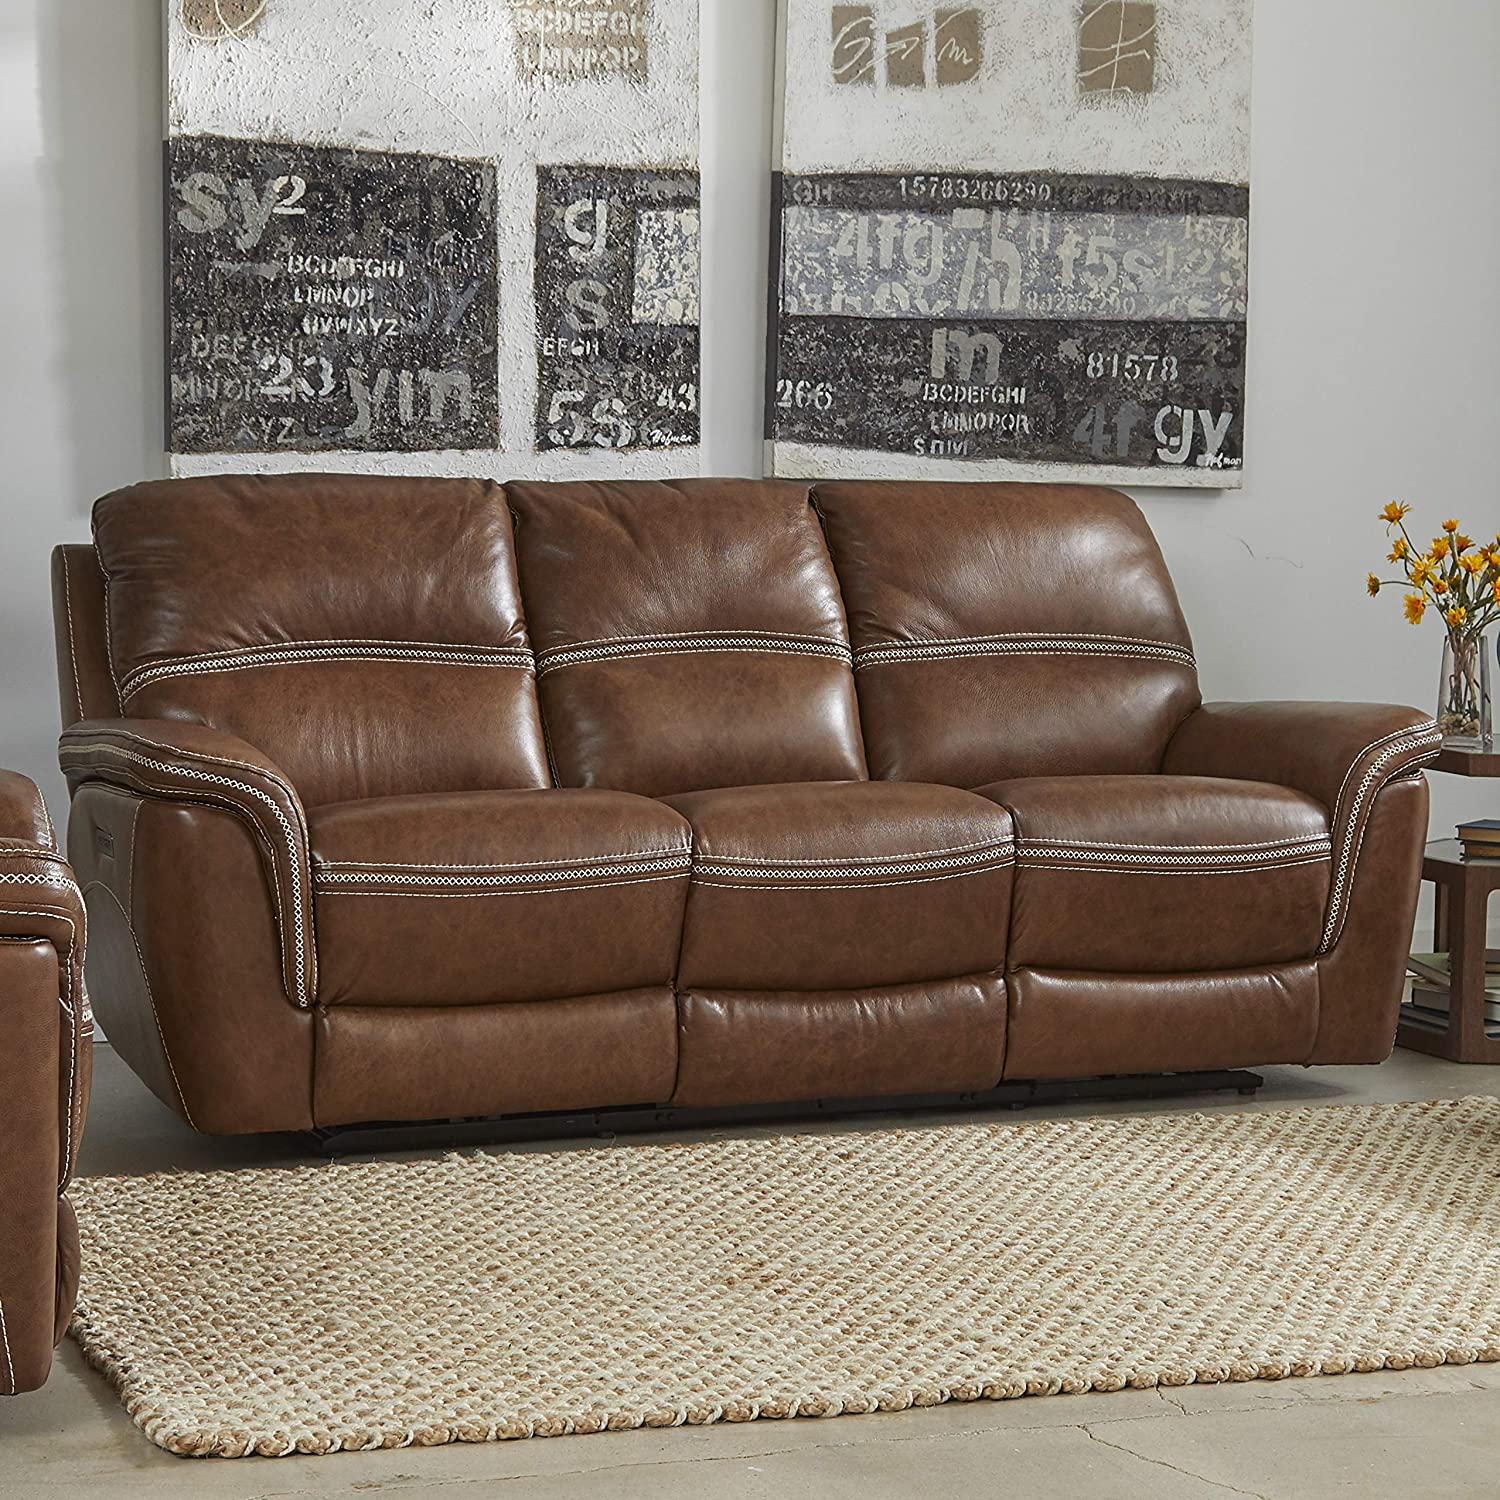 Stitch & Time 5571 Mason Reclining Leather Sofa, Brown